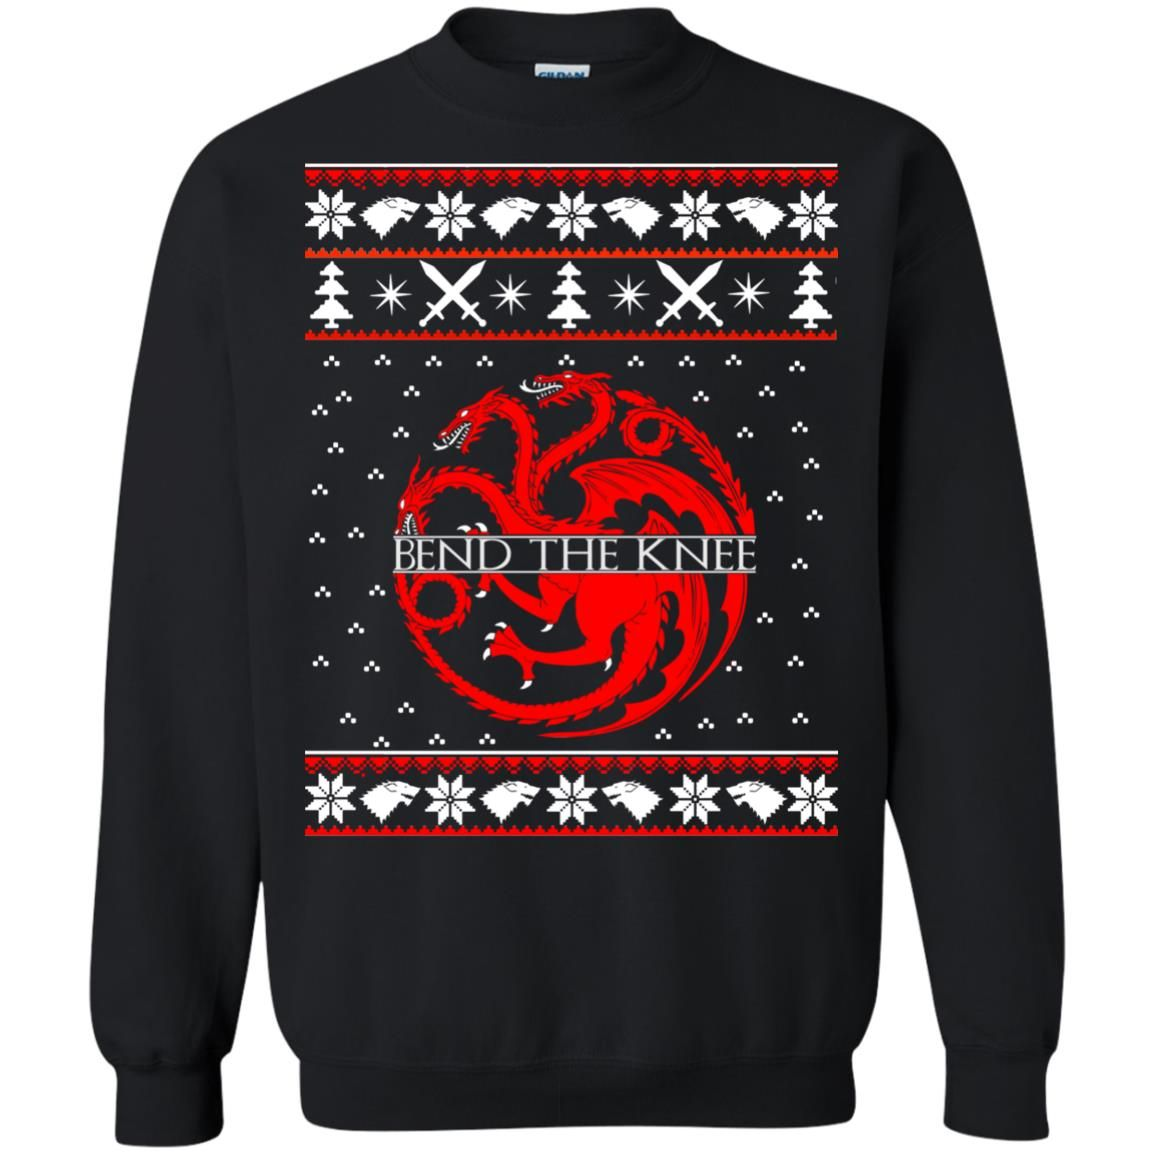 image 868 - Game of Thrones Bend the knee Christmas sweater, long sleeve